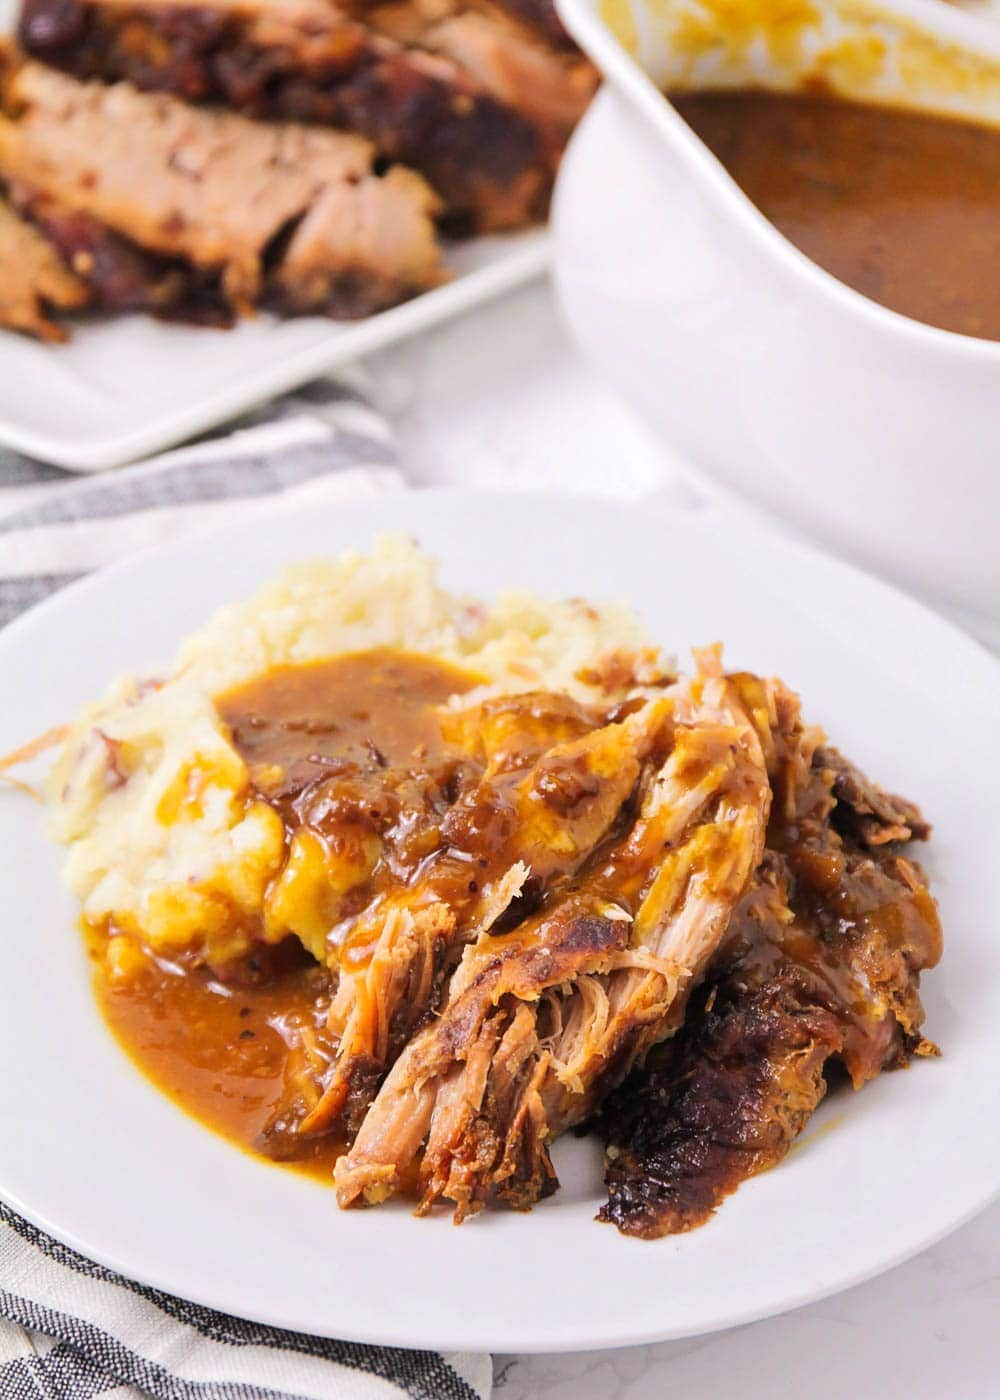 Crock pot pork roast covered in gravy